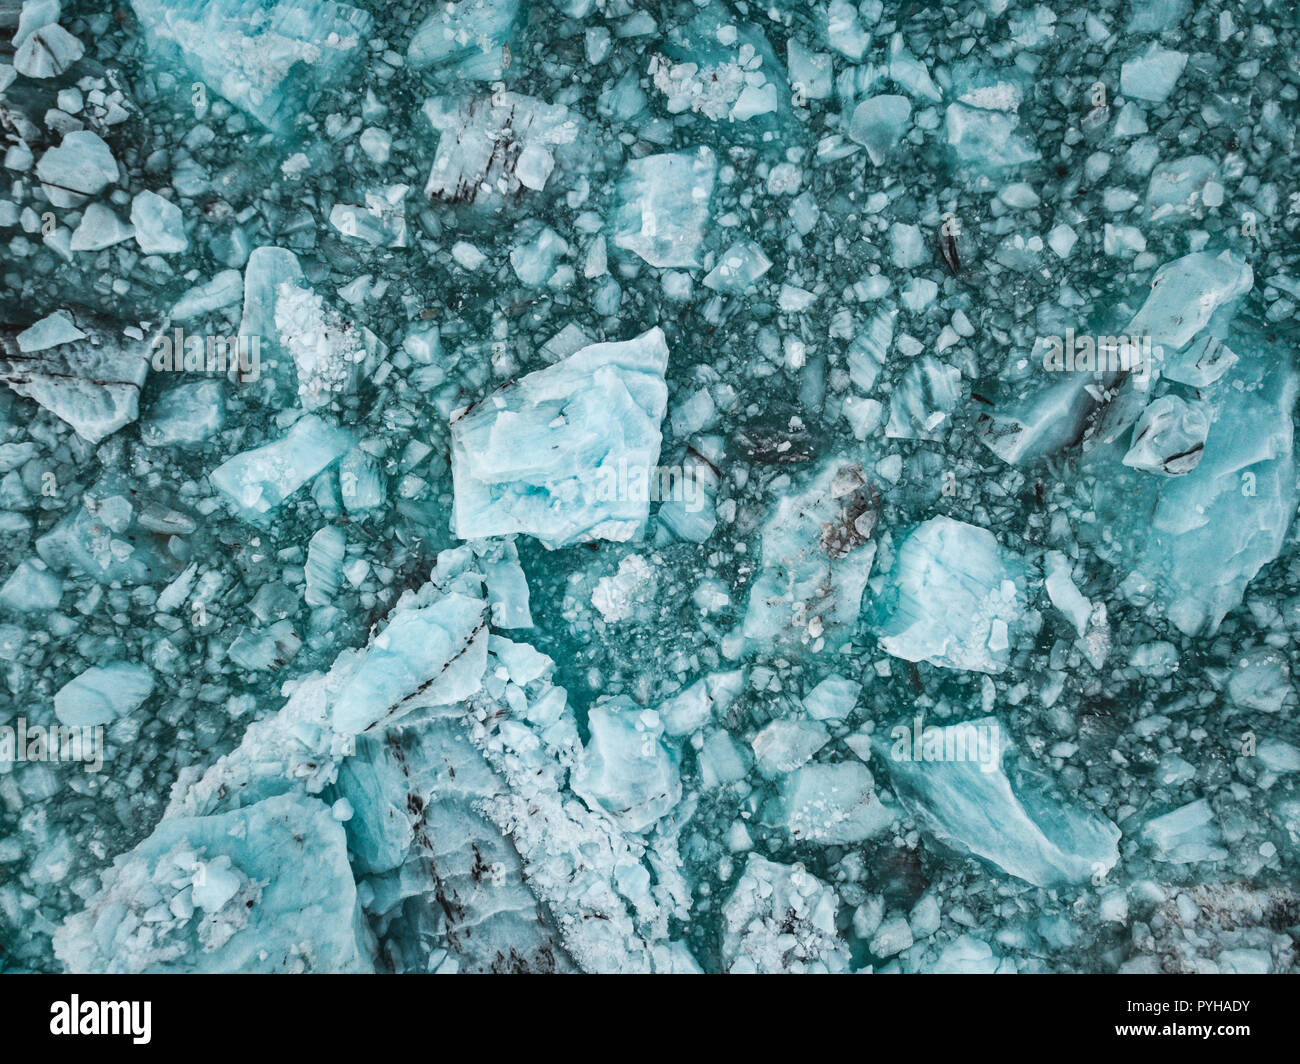 Spectacular glacial lagoon in Iceland with floating icebergs - Stock Image